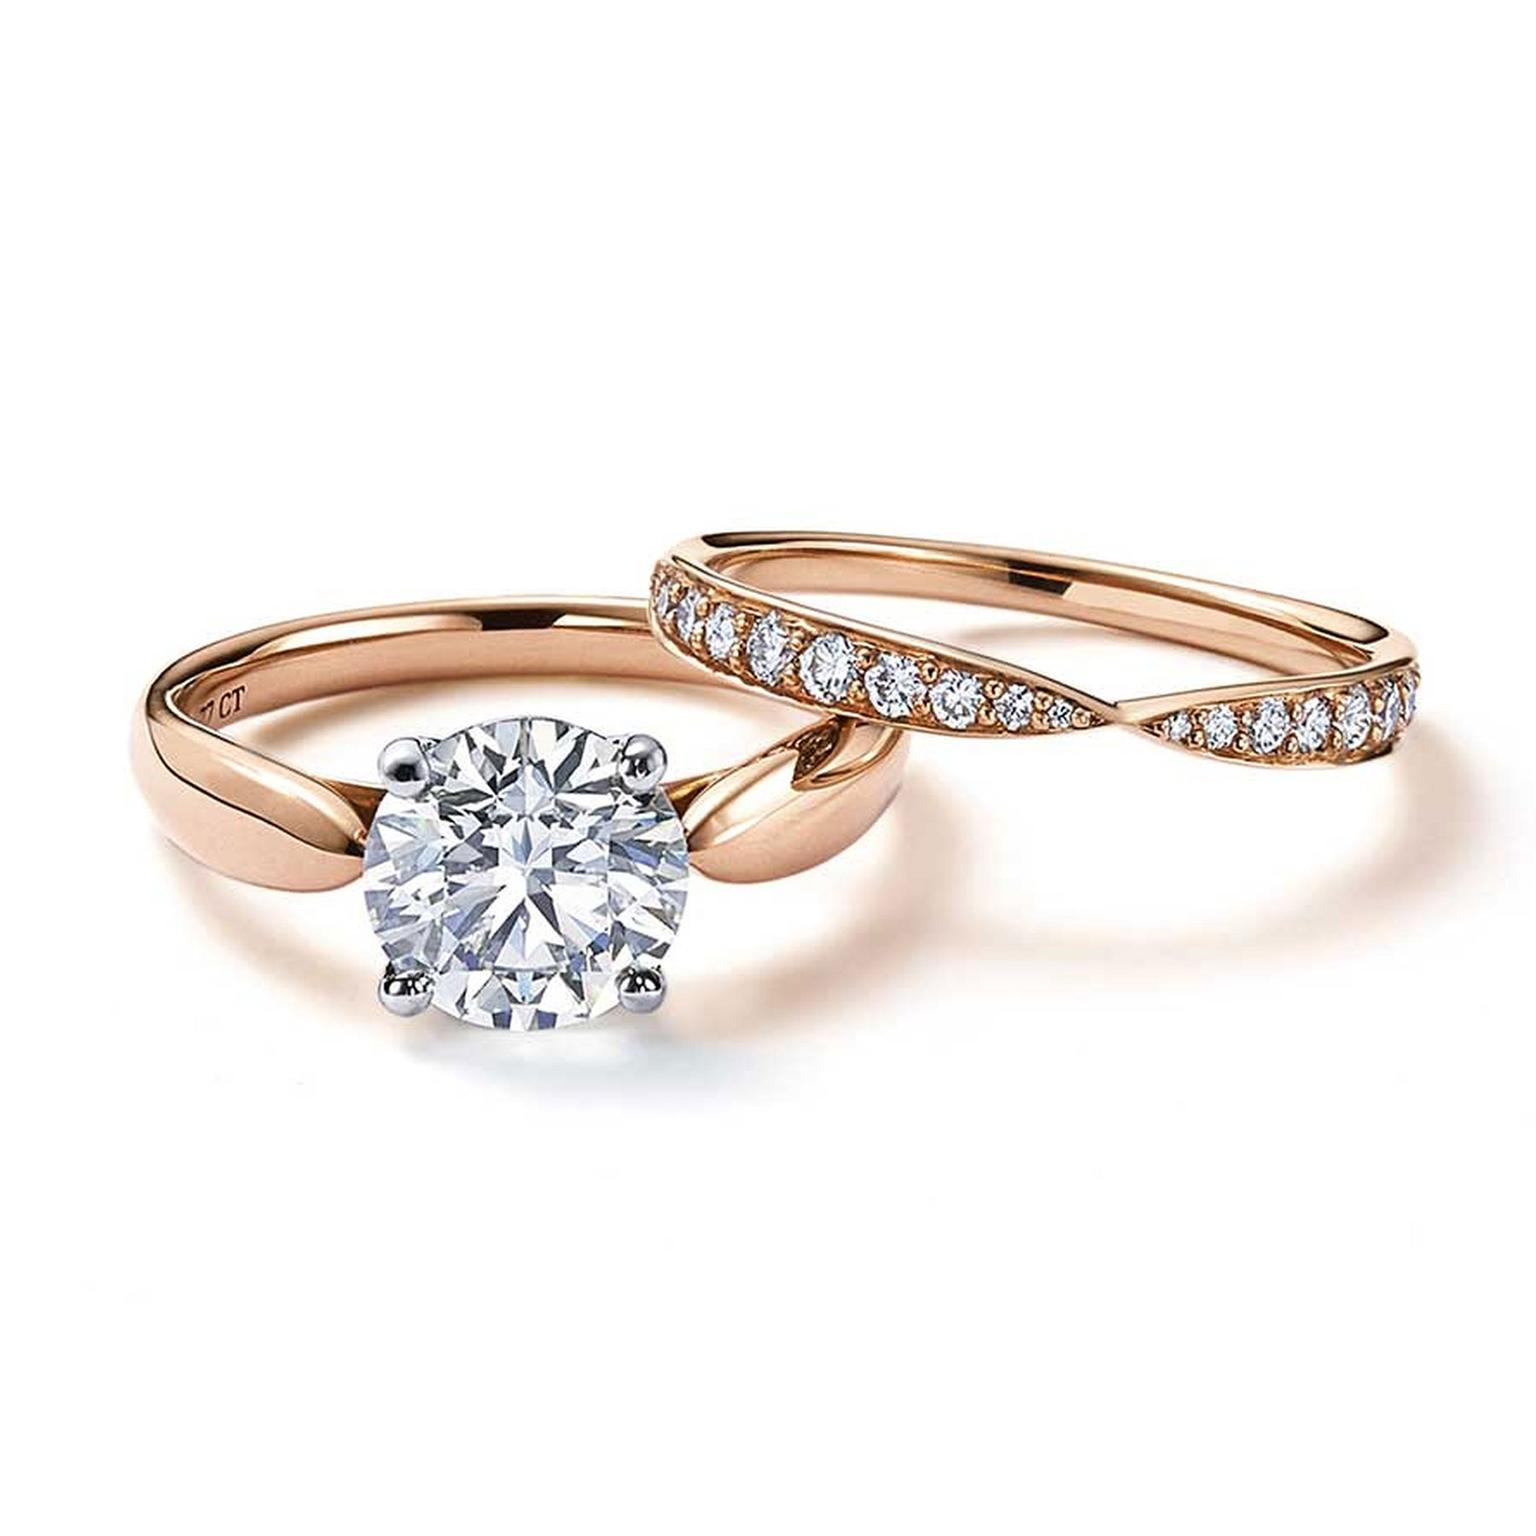 tiffany wedding rings perfection and eternity tiffany wedding bands tiffany wedding rings for couple